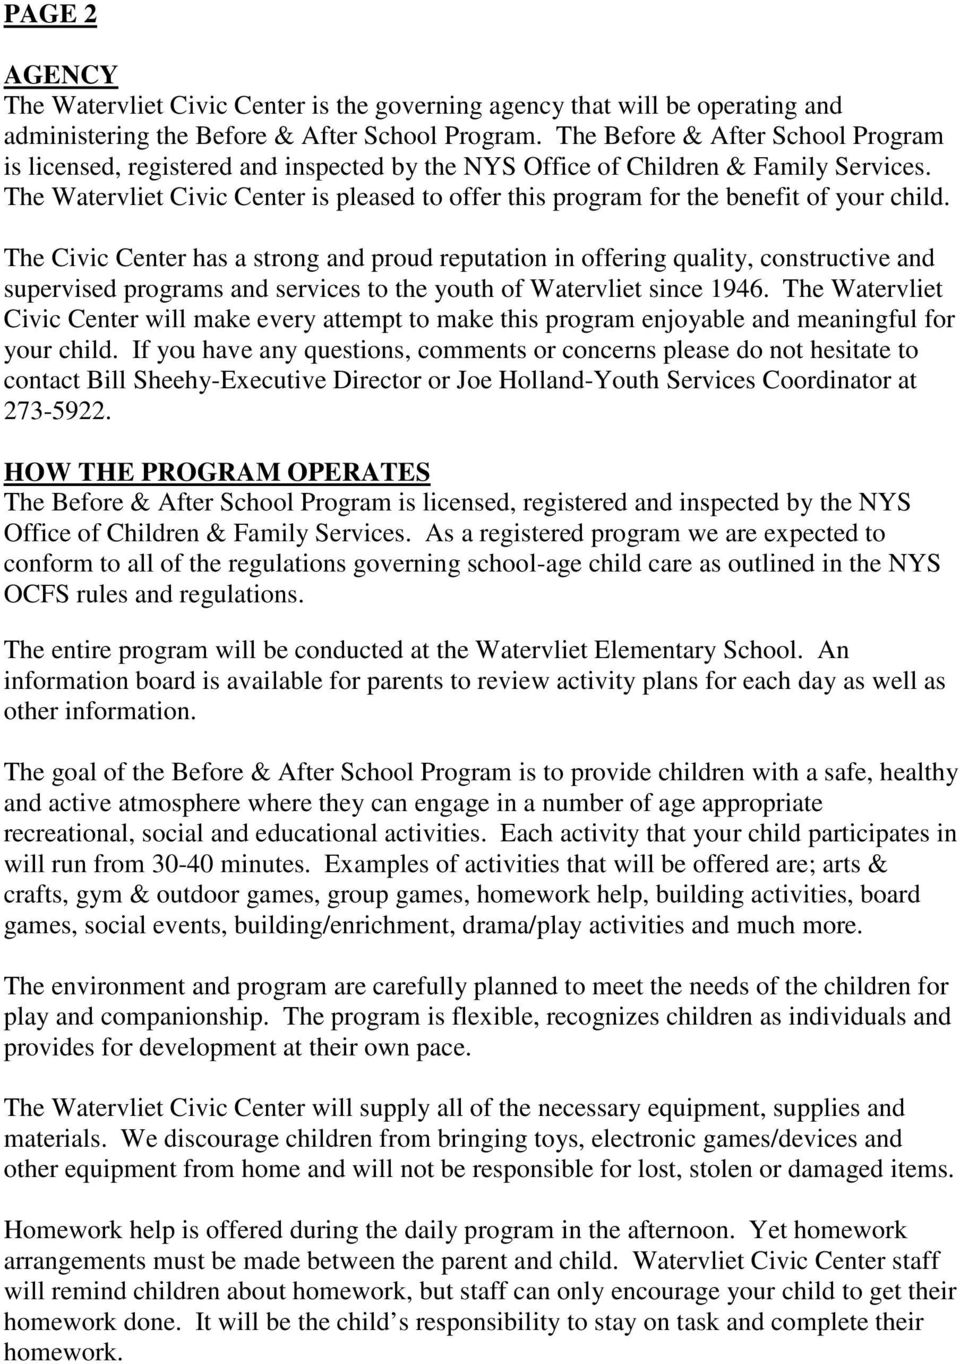 The Watervliet Civic Center is pleased to offer this program for the benefit of your child.